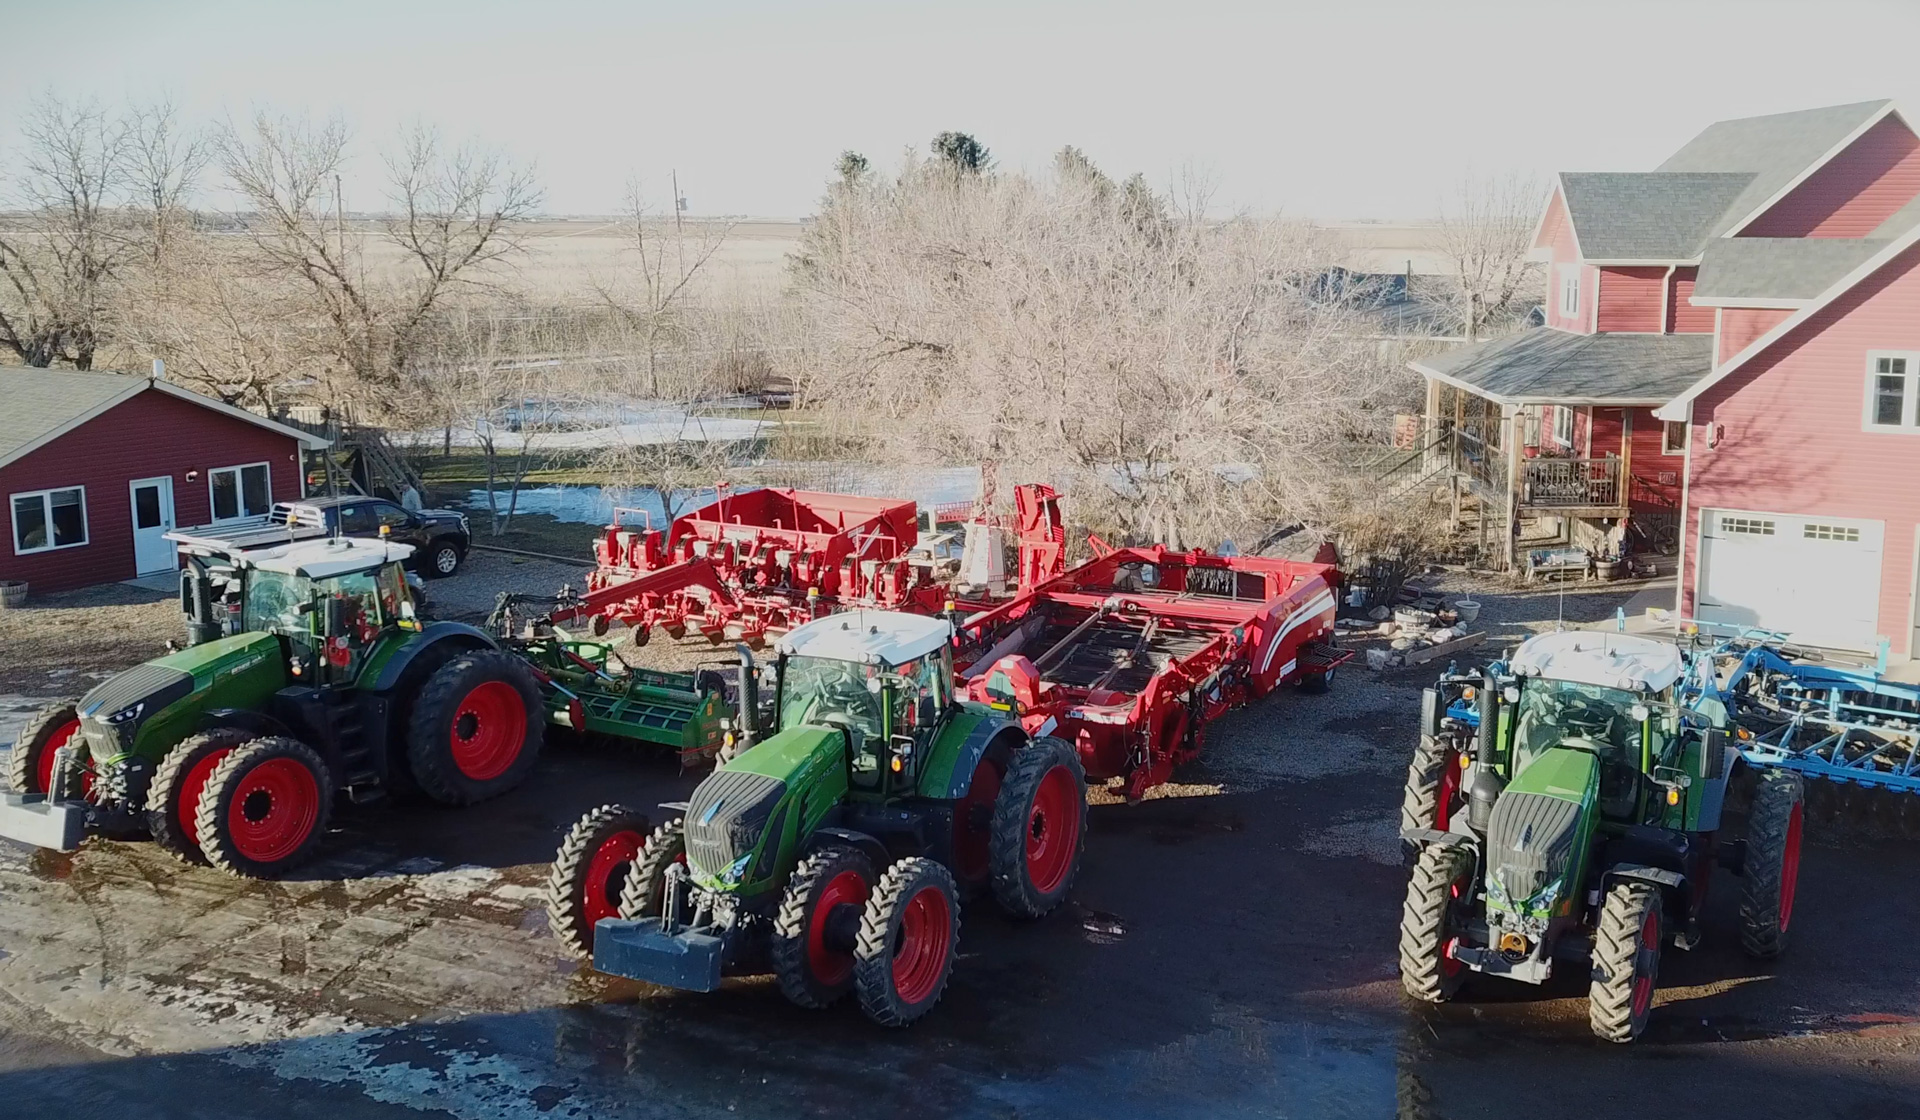 The Camps run a Fendt tractor from every category available in North America.